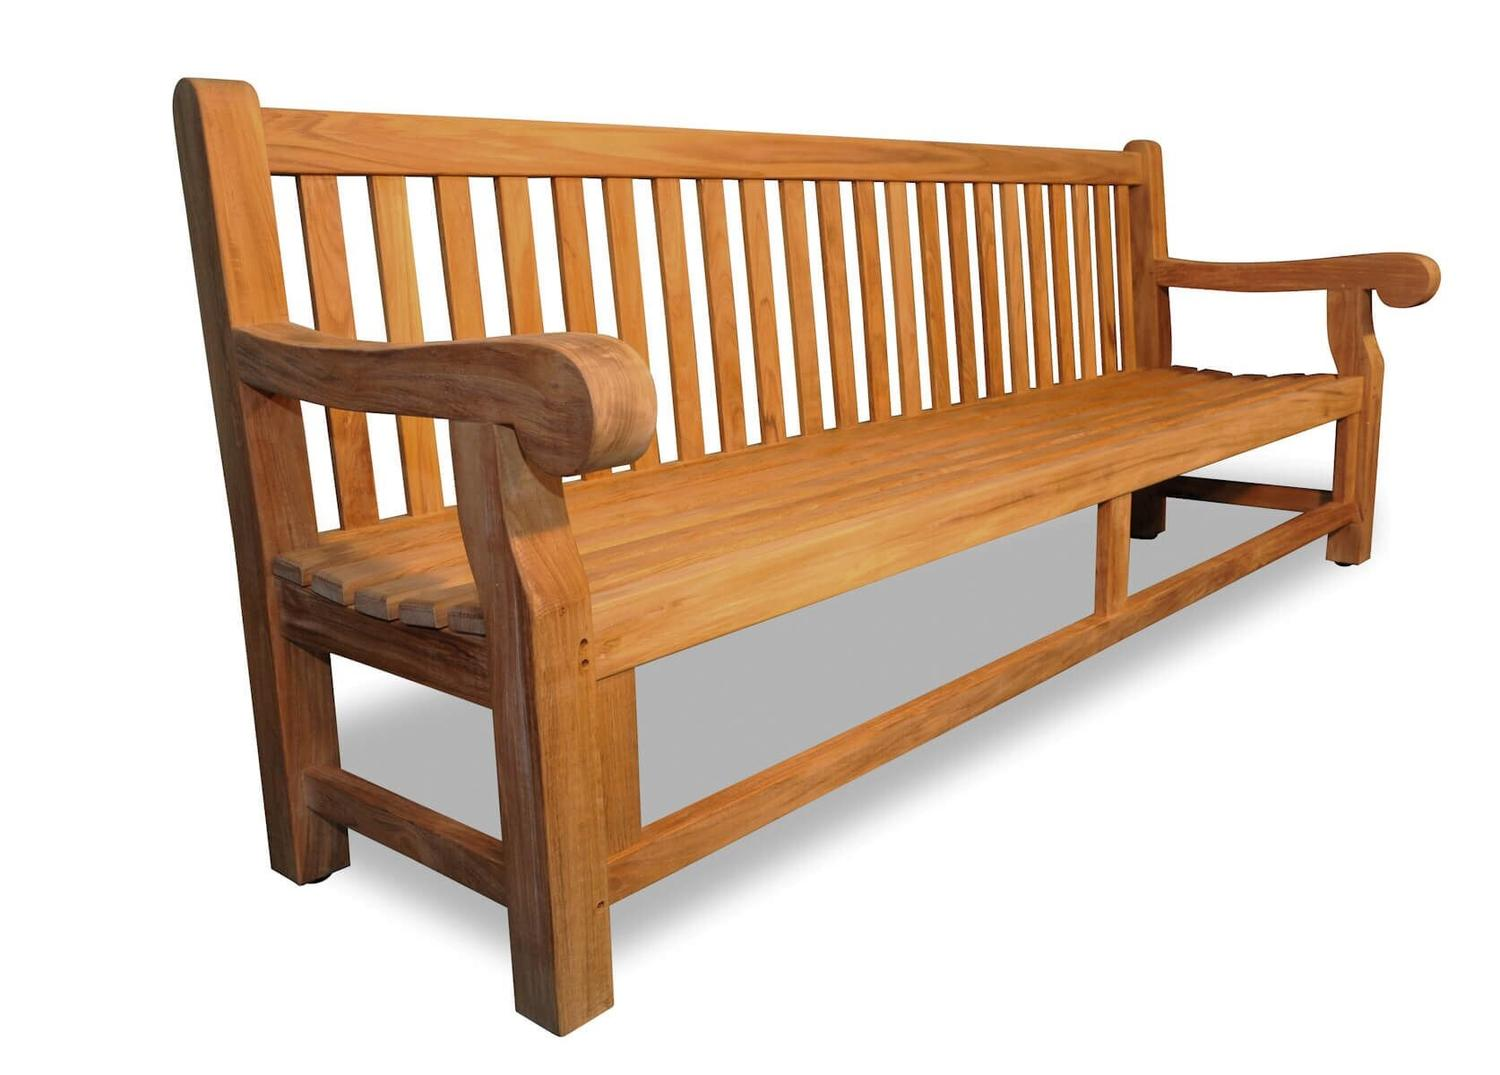 "96"" Natural Teak Outdoor Patio Hyde Park Inspired Wooden Bench by Eco-Friendly Furnishings"